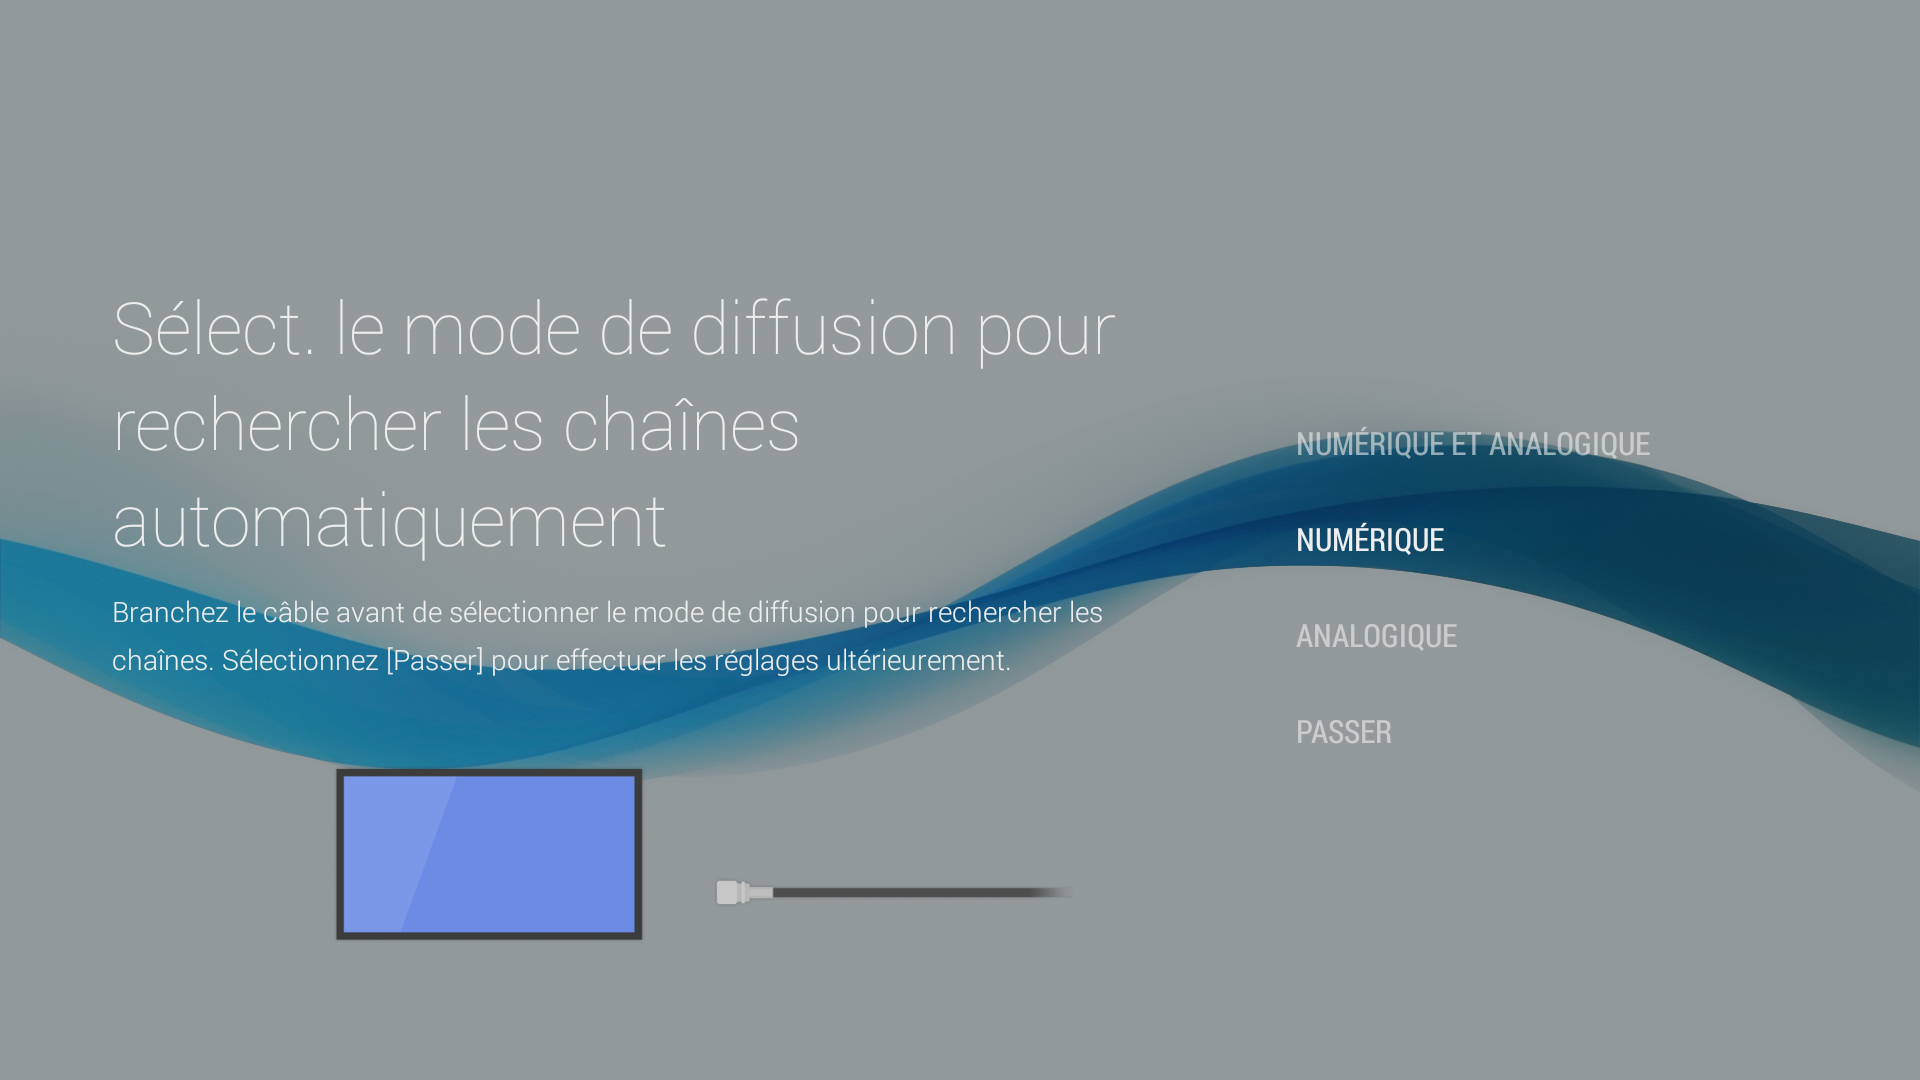 Android - Type de diffusion